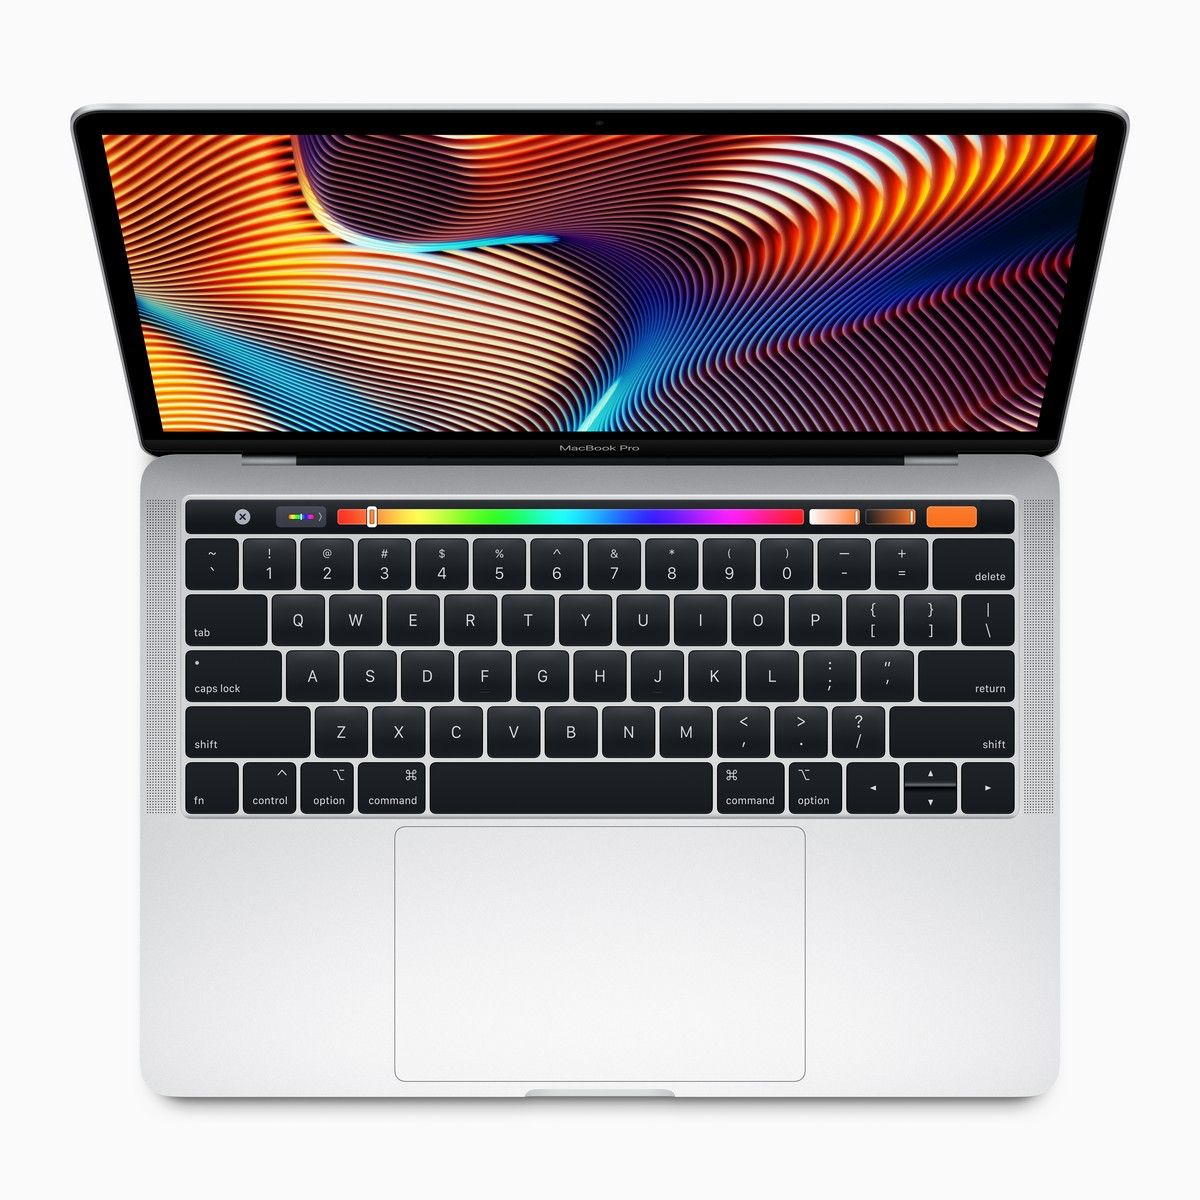 Best 14 Inch Laptop 2021 14 inch MacBook Pro Has Reportedly Been Delayed To 2021 | Ubergizmo